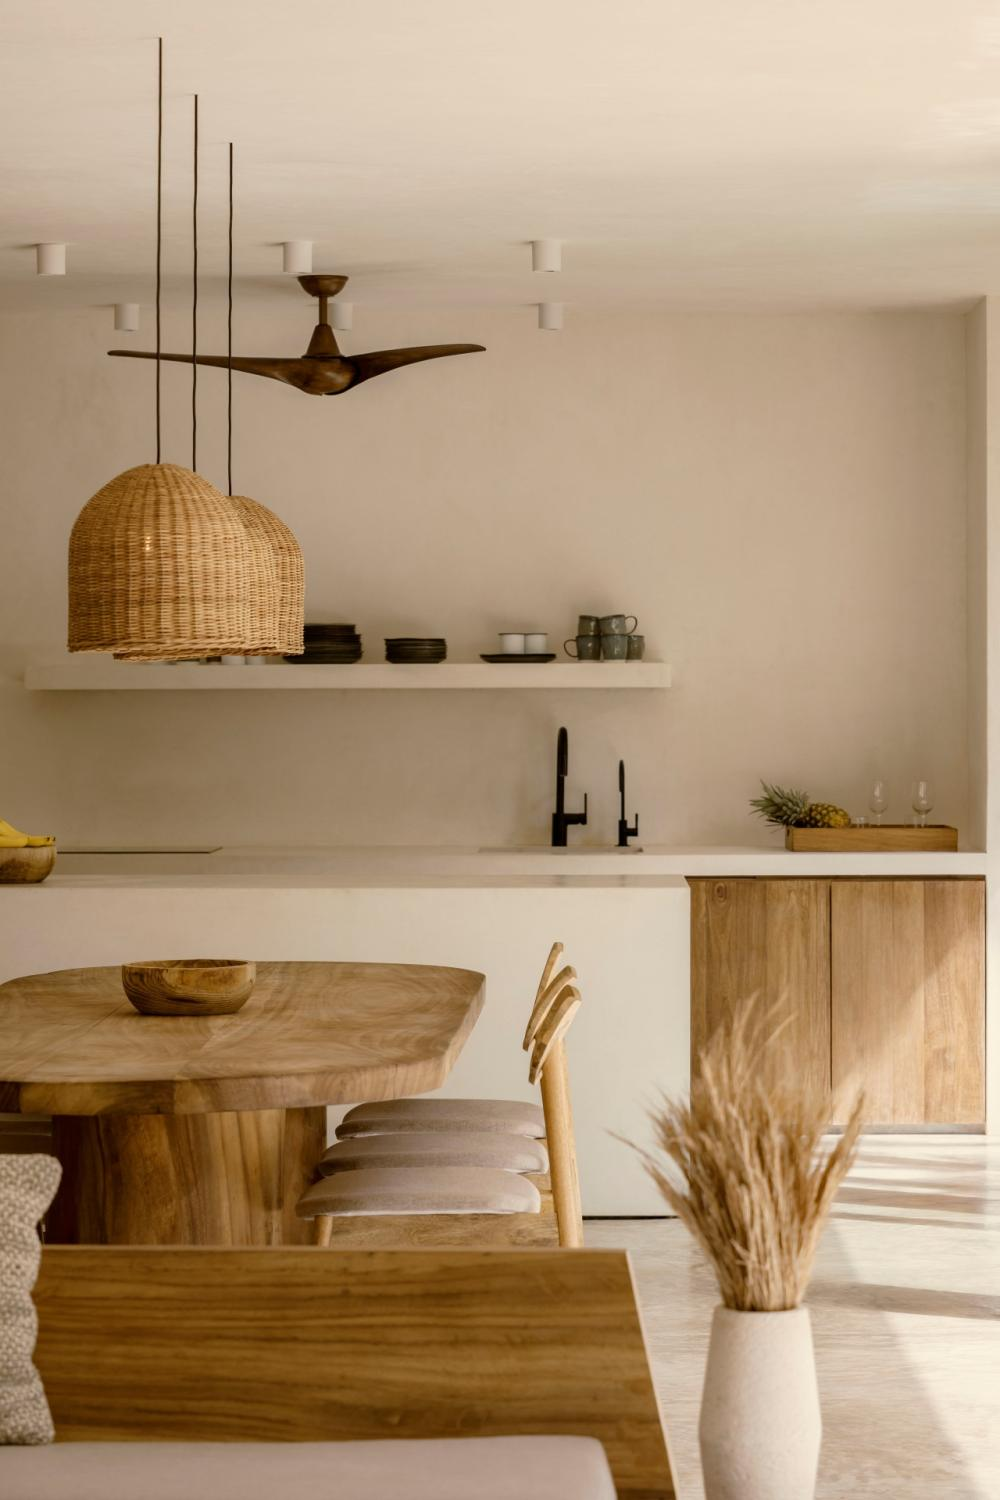 House tour: a peaceful, tropical holiday home in the trendy Mexican beach town of Tulum-11.jpg